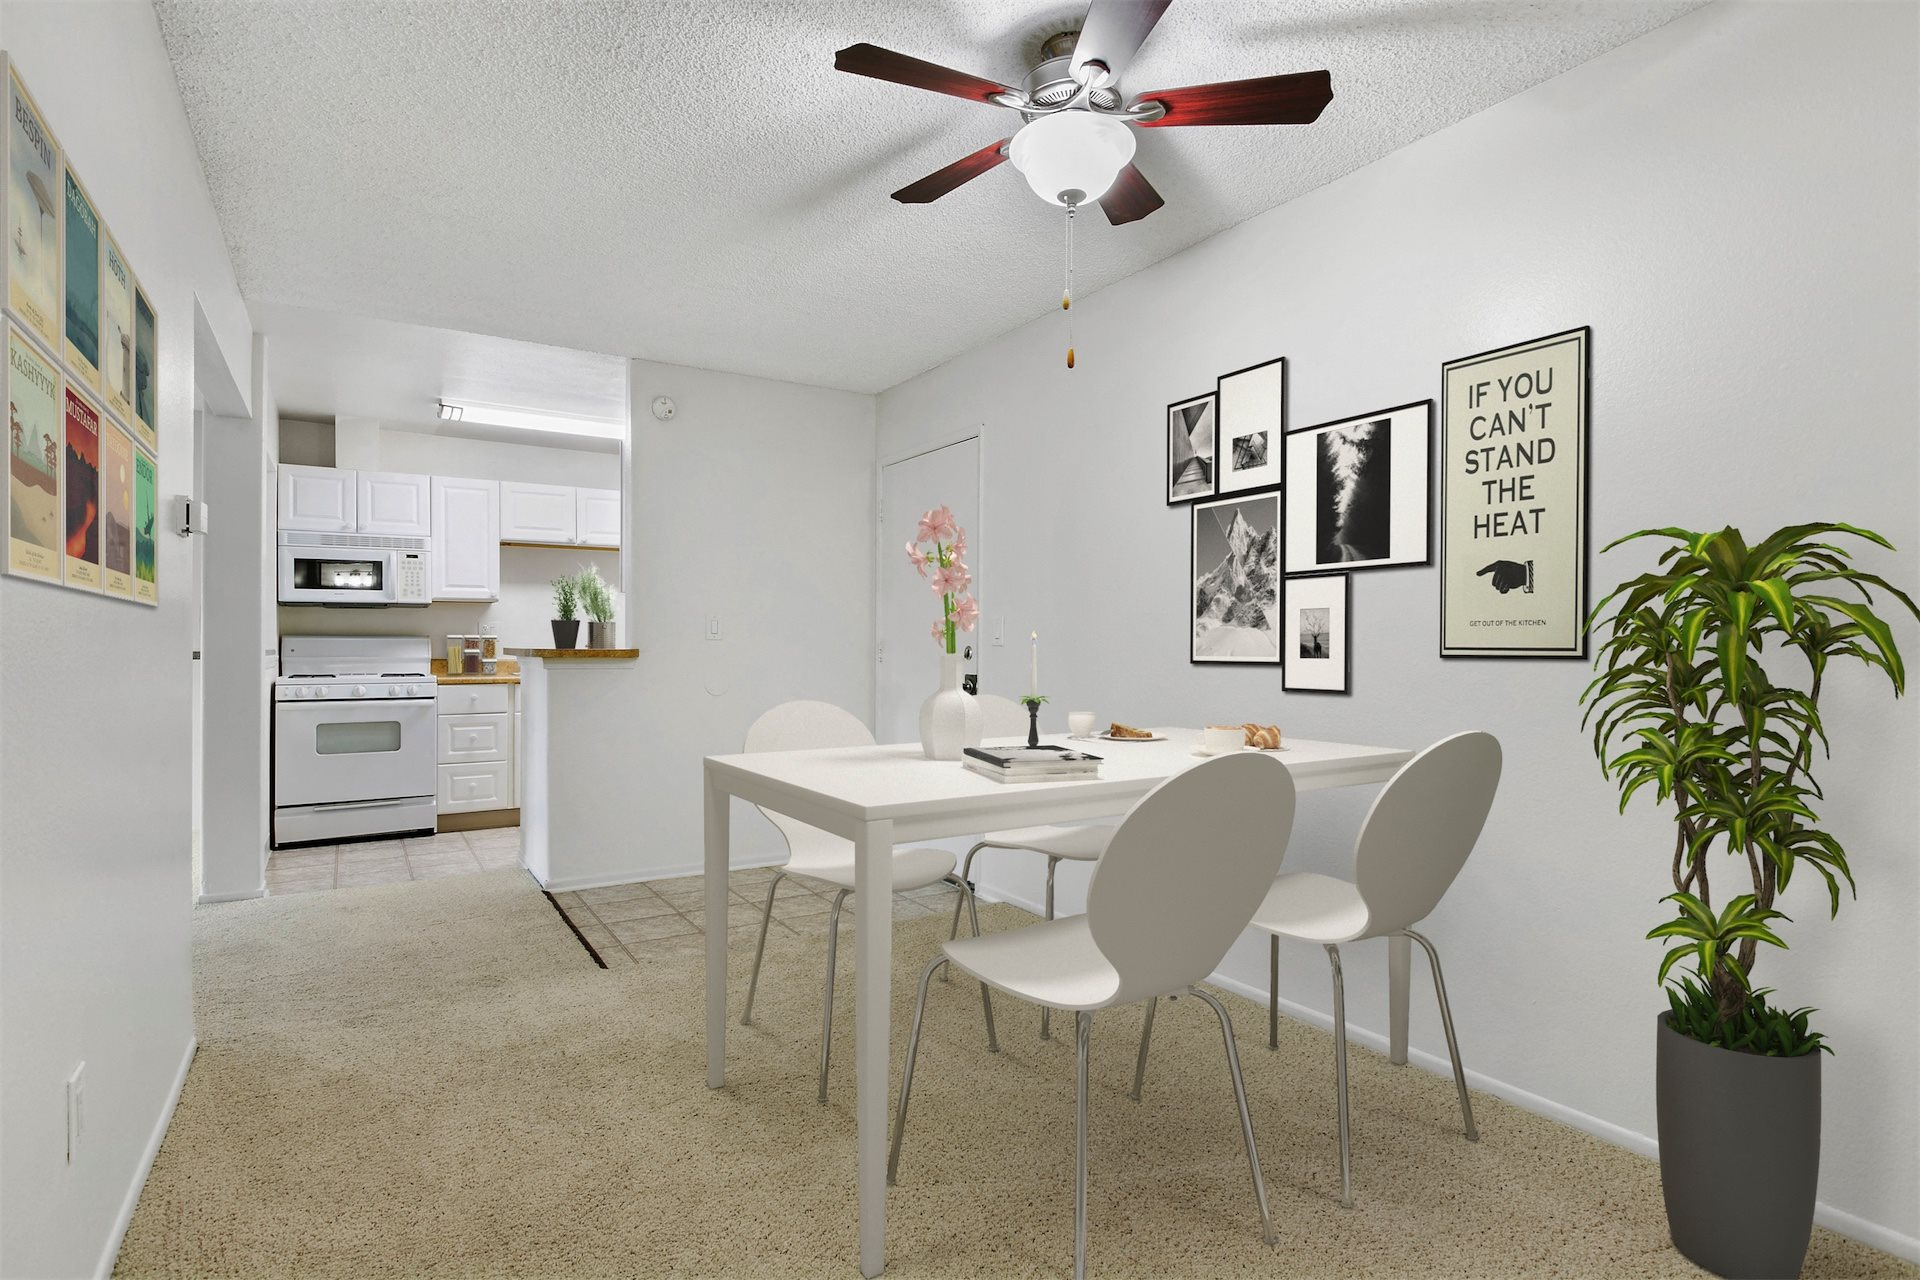 Photos and video of nutwood apartments in fullerton ca for Fullerton apartments 1 bedroom